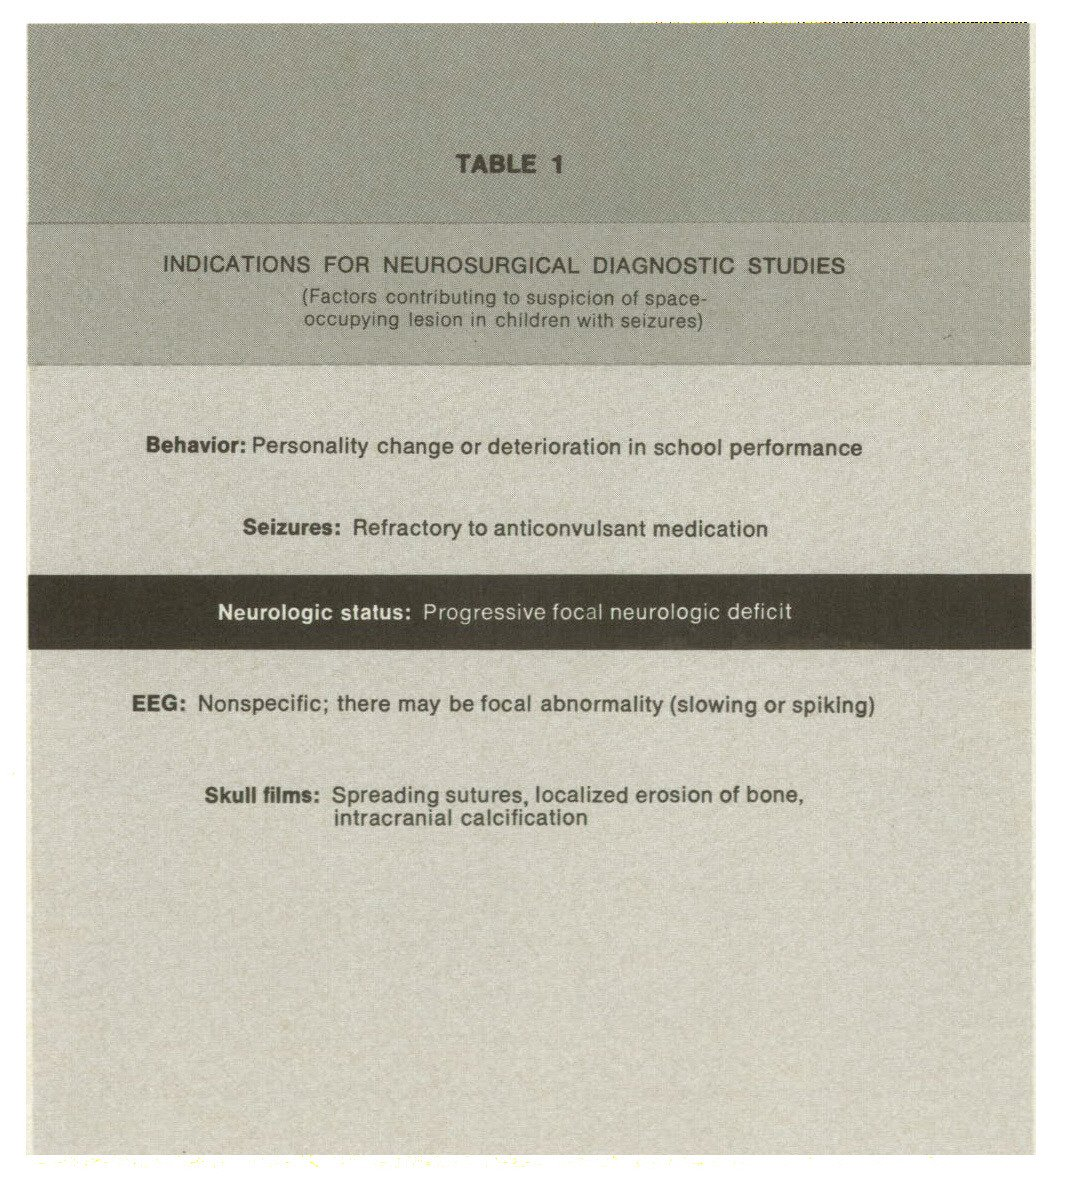 TABLE 1NDICATIONS FOR NEUROSURGICAL DIAGNOSTIC STUDIES